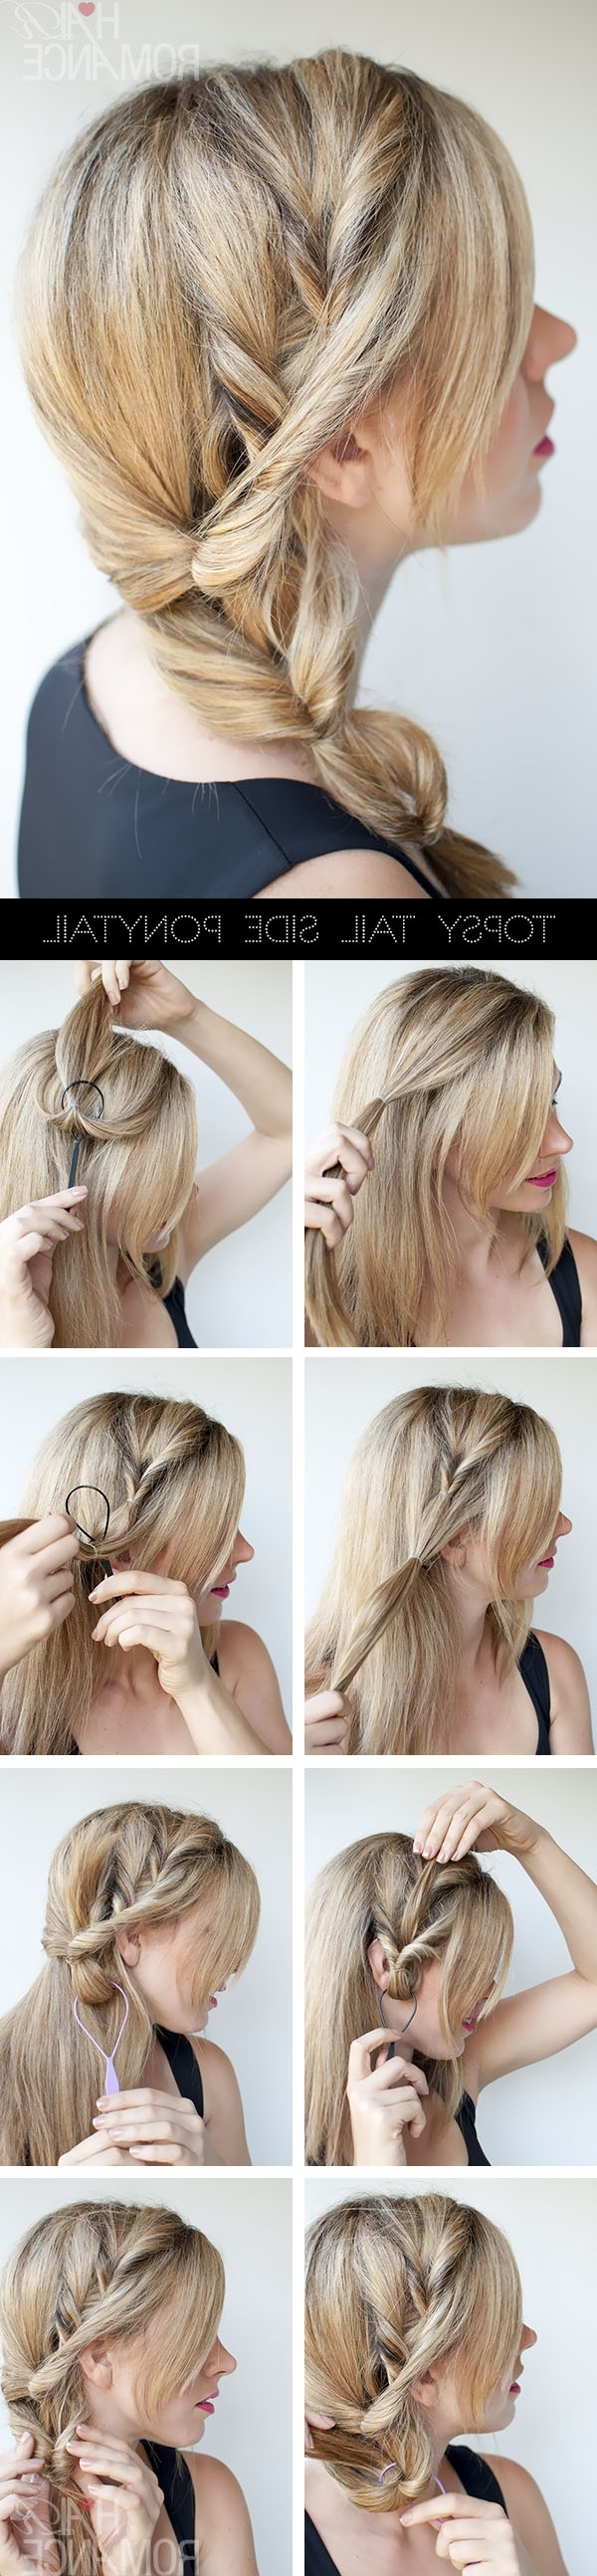 Topsy Tail Ponytail Tutorial – The No Braid Side Braid Hairstyle Within Most Popular Updo Pony Hairstyles With Side Braids (View 17 of 20)